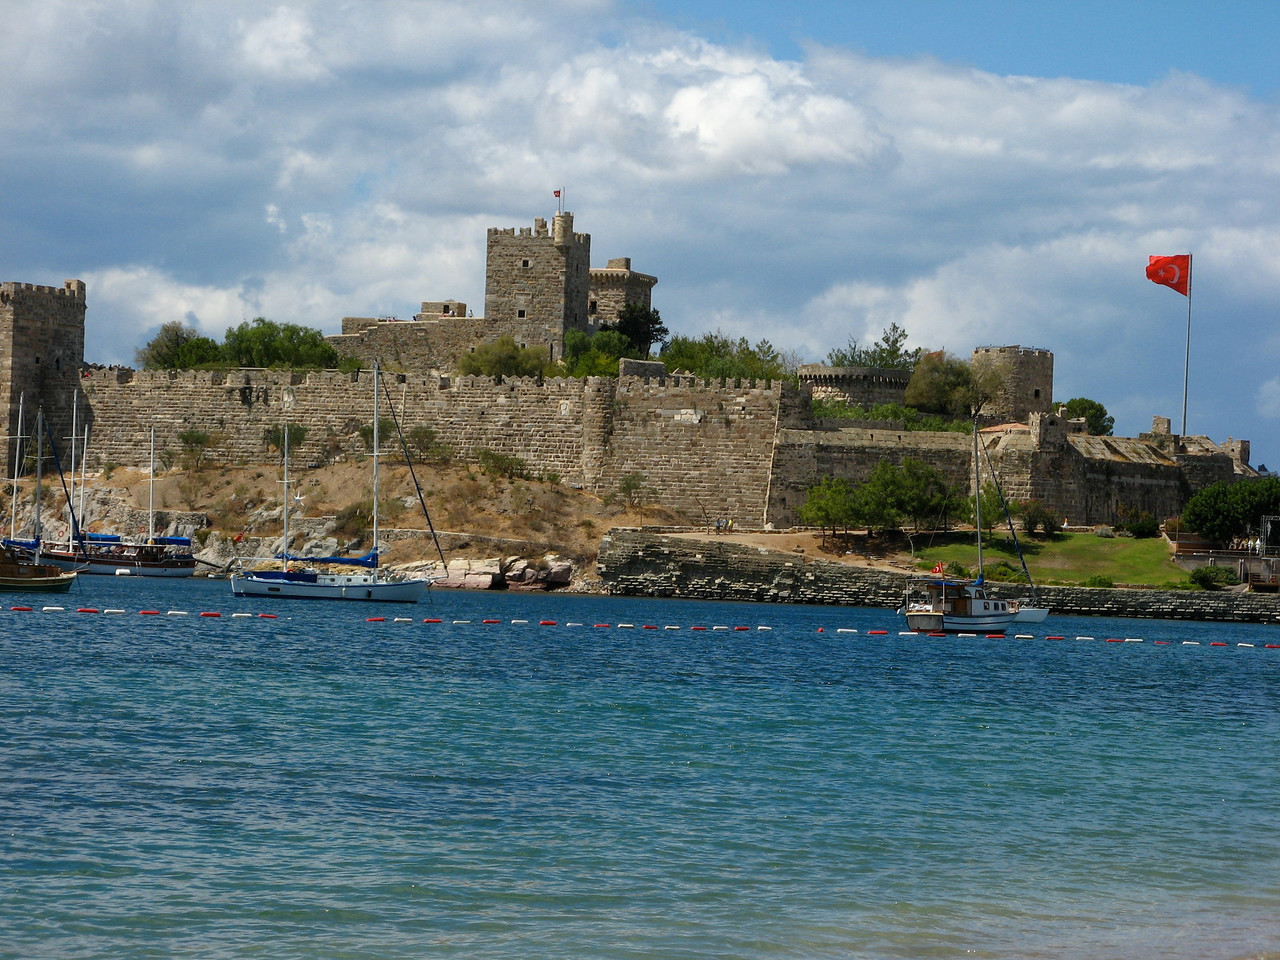 The Castle of St Peter in Bodrum was built in 1402.